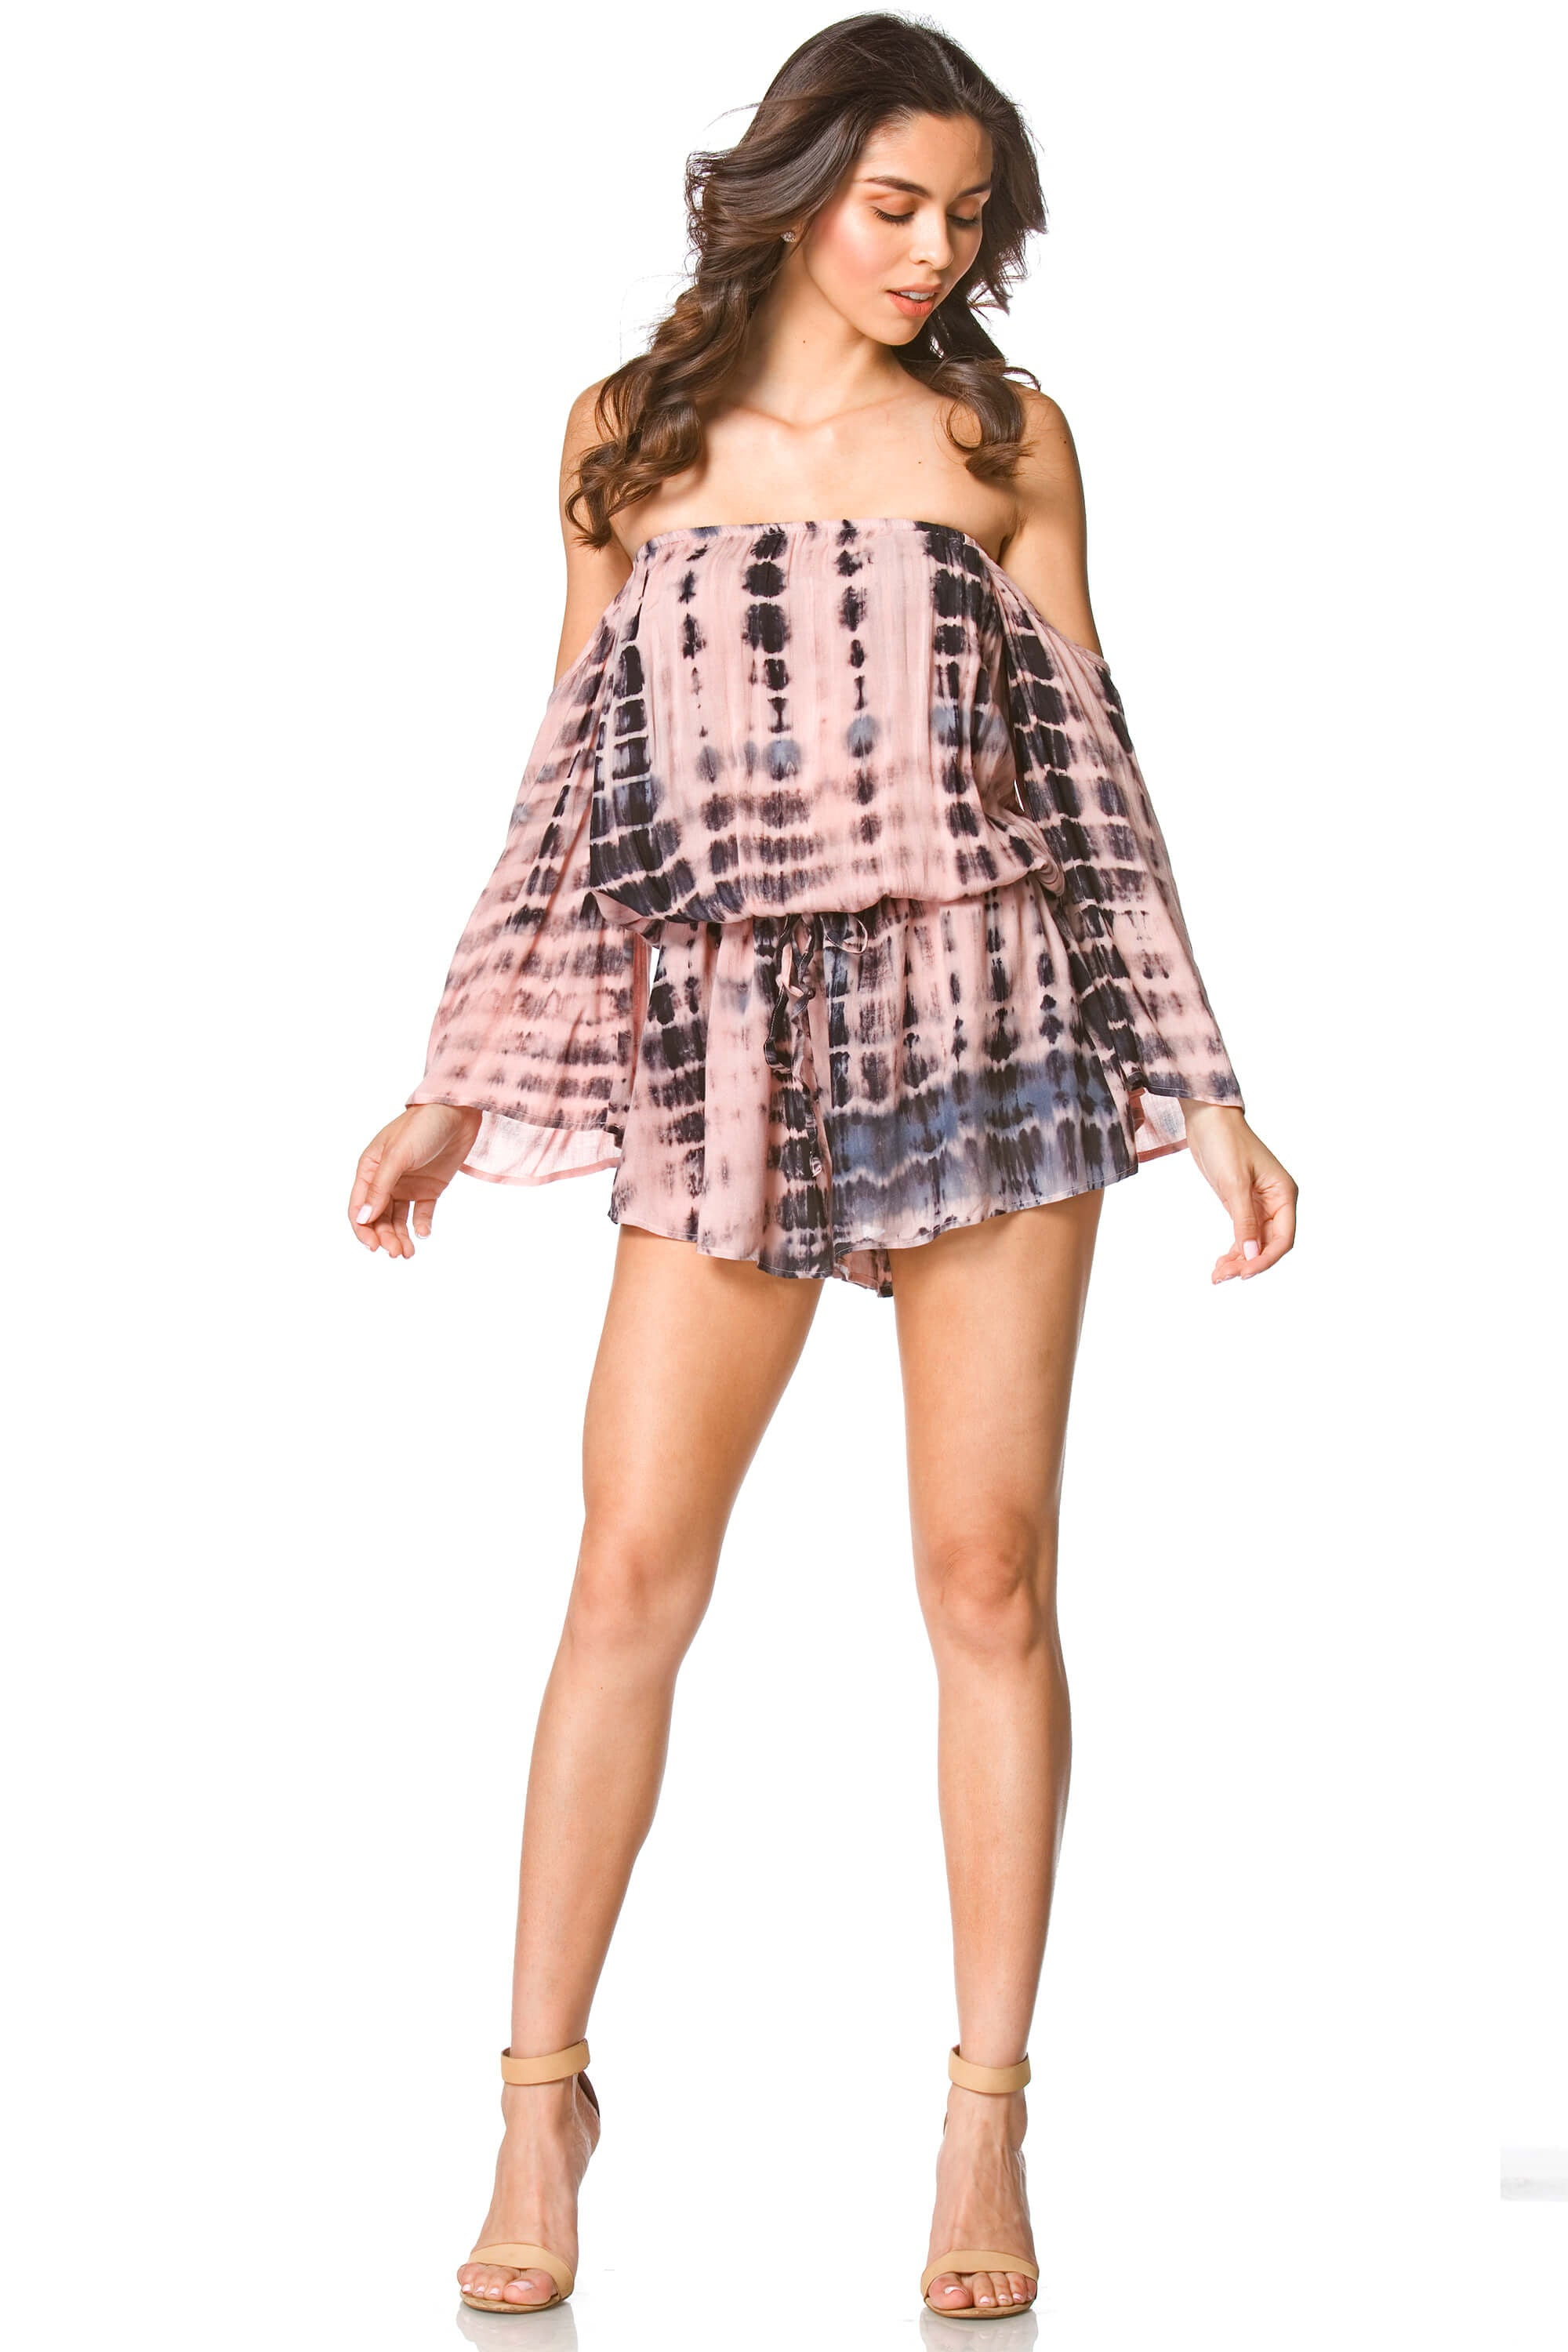 Hudson Tie Dye Romper in Black, Dresses & Rompers - shoptoni.com